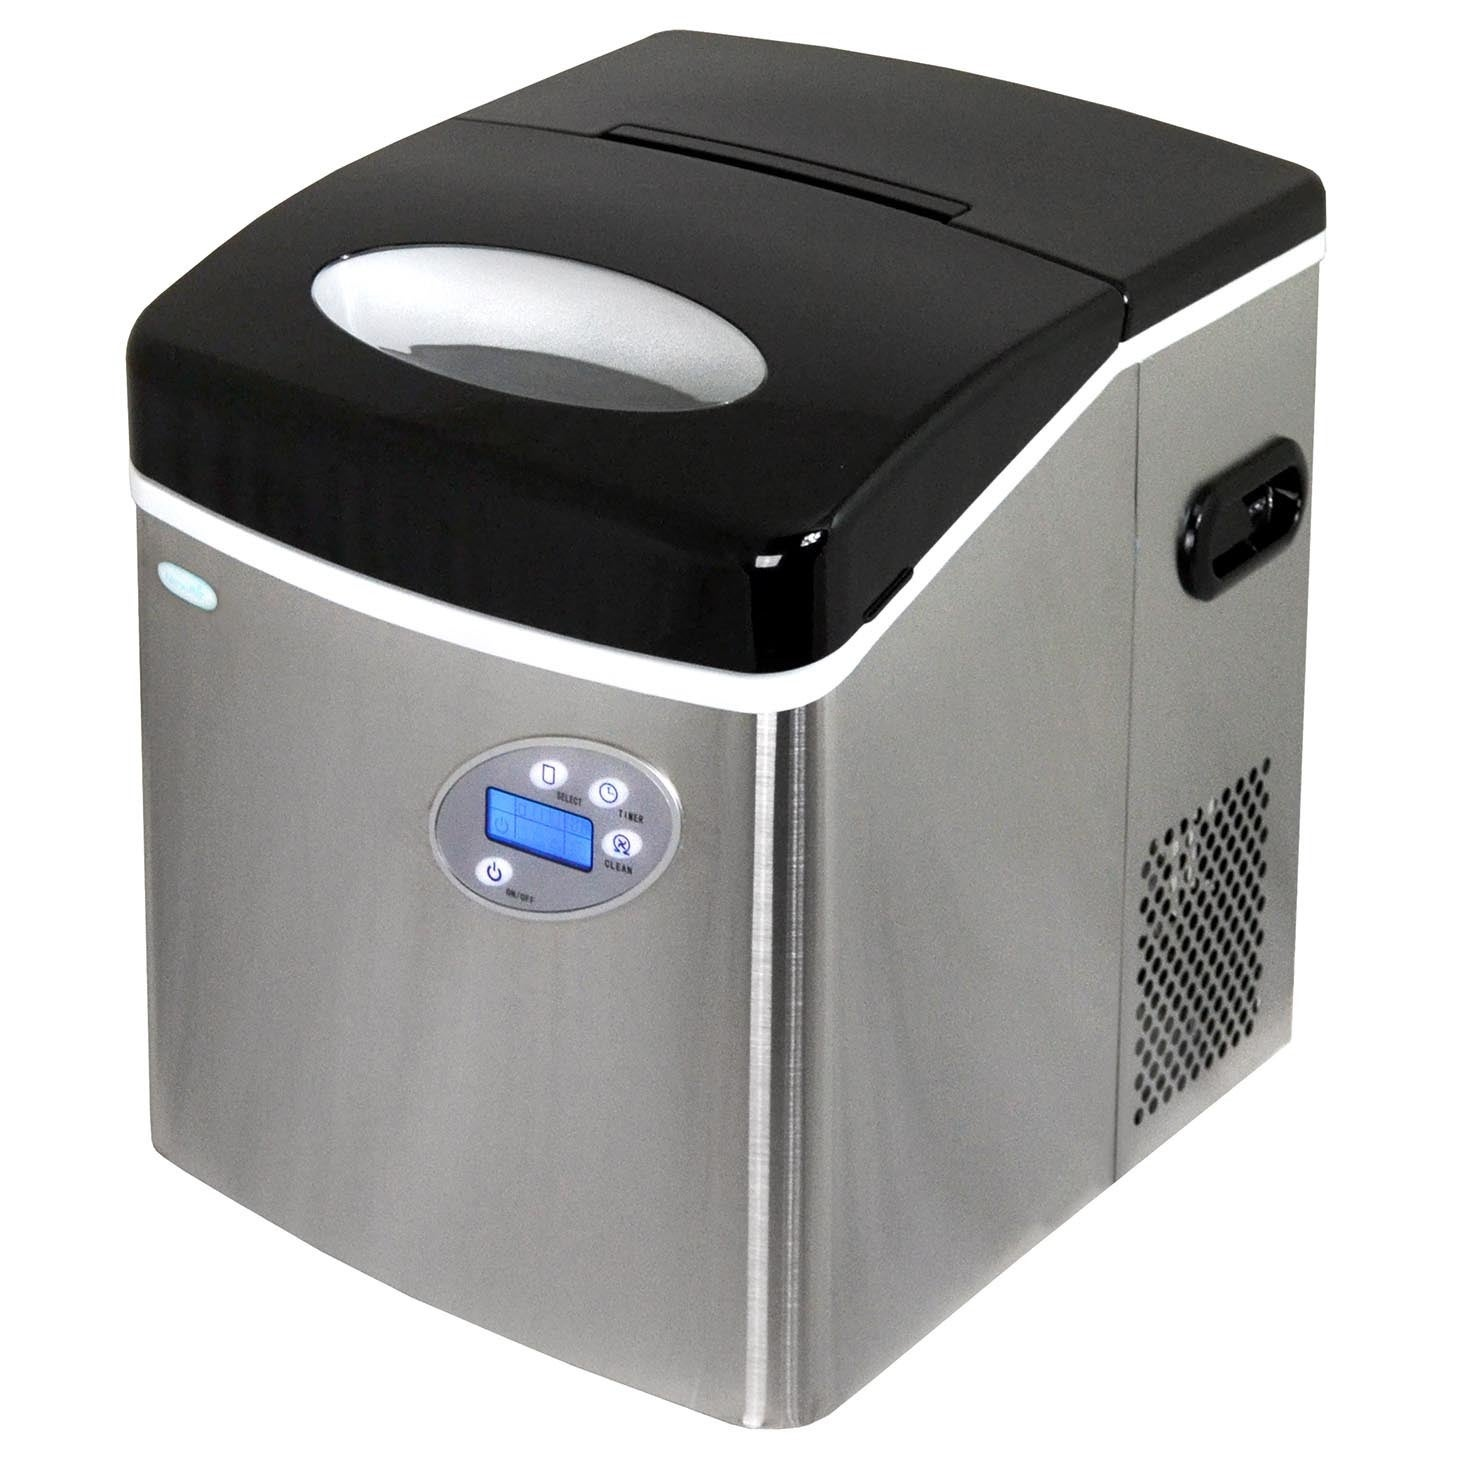 NewAir Appliances Stainless Steel Portable Ice Maker at Sears.com